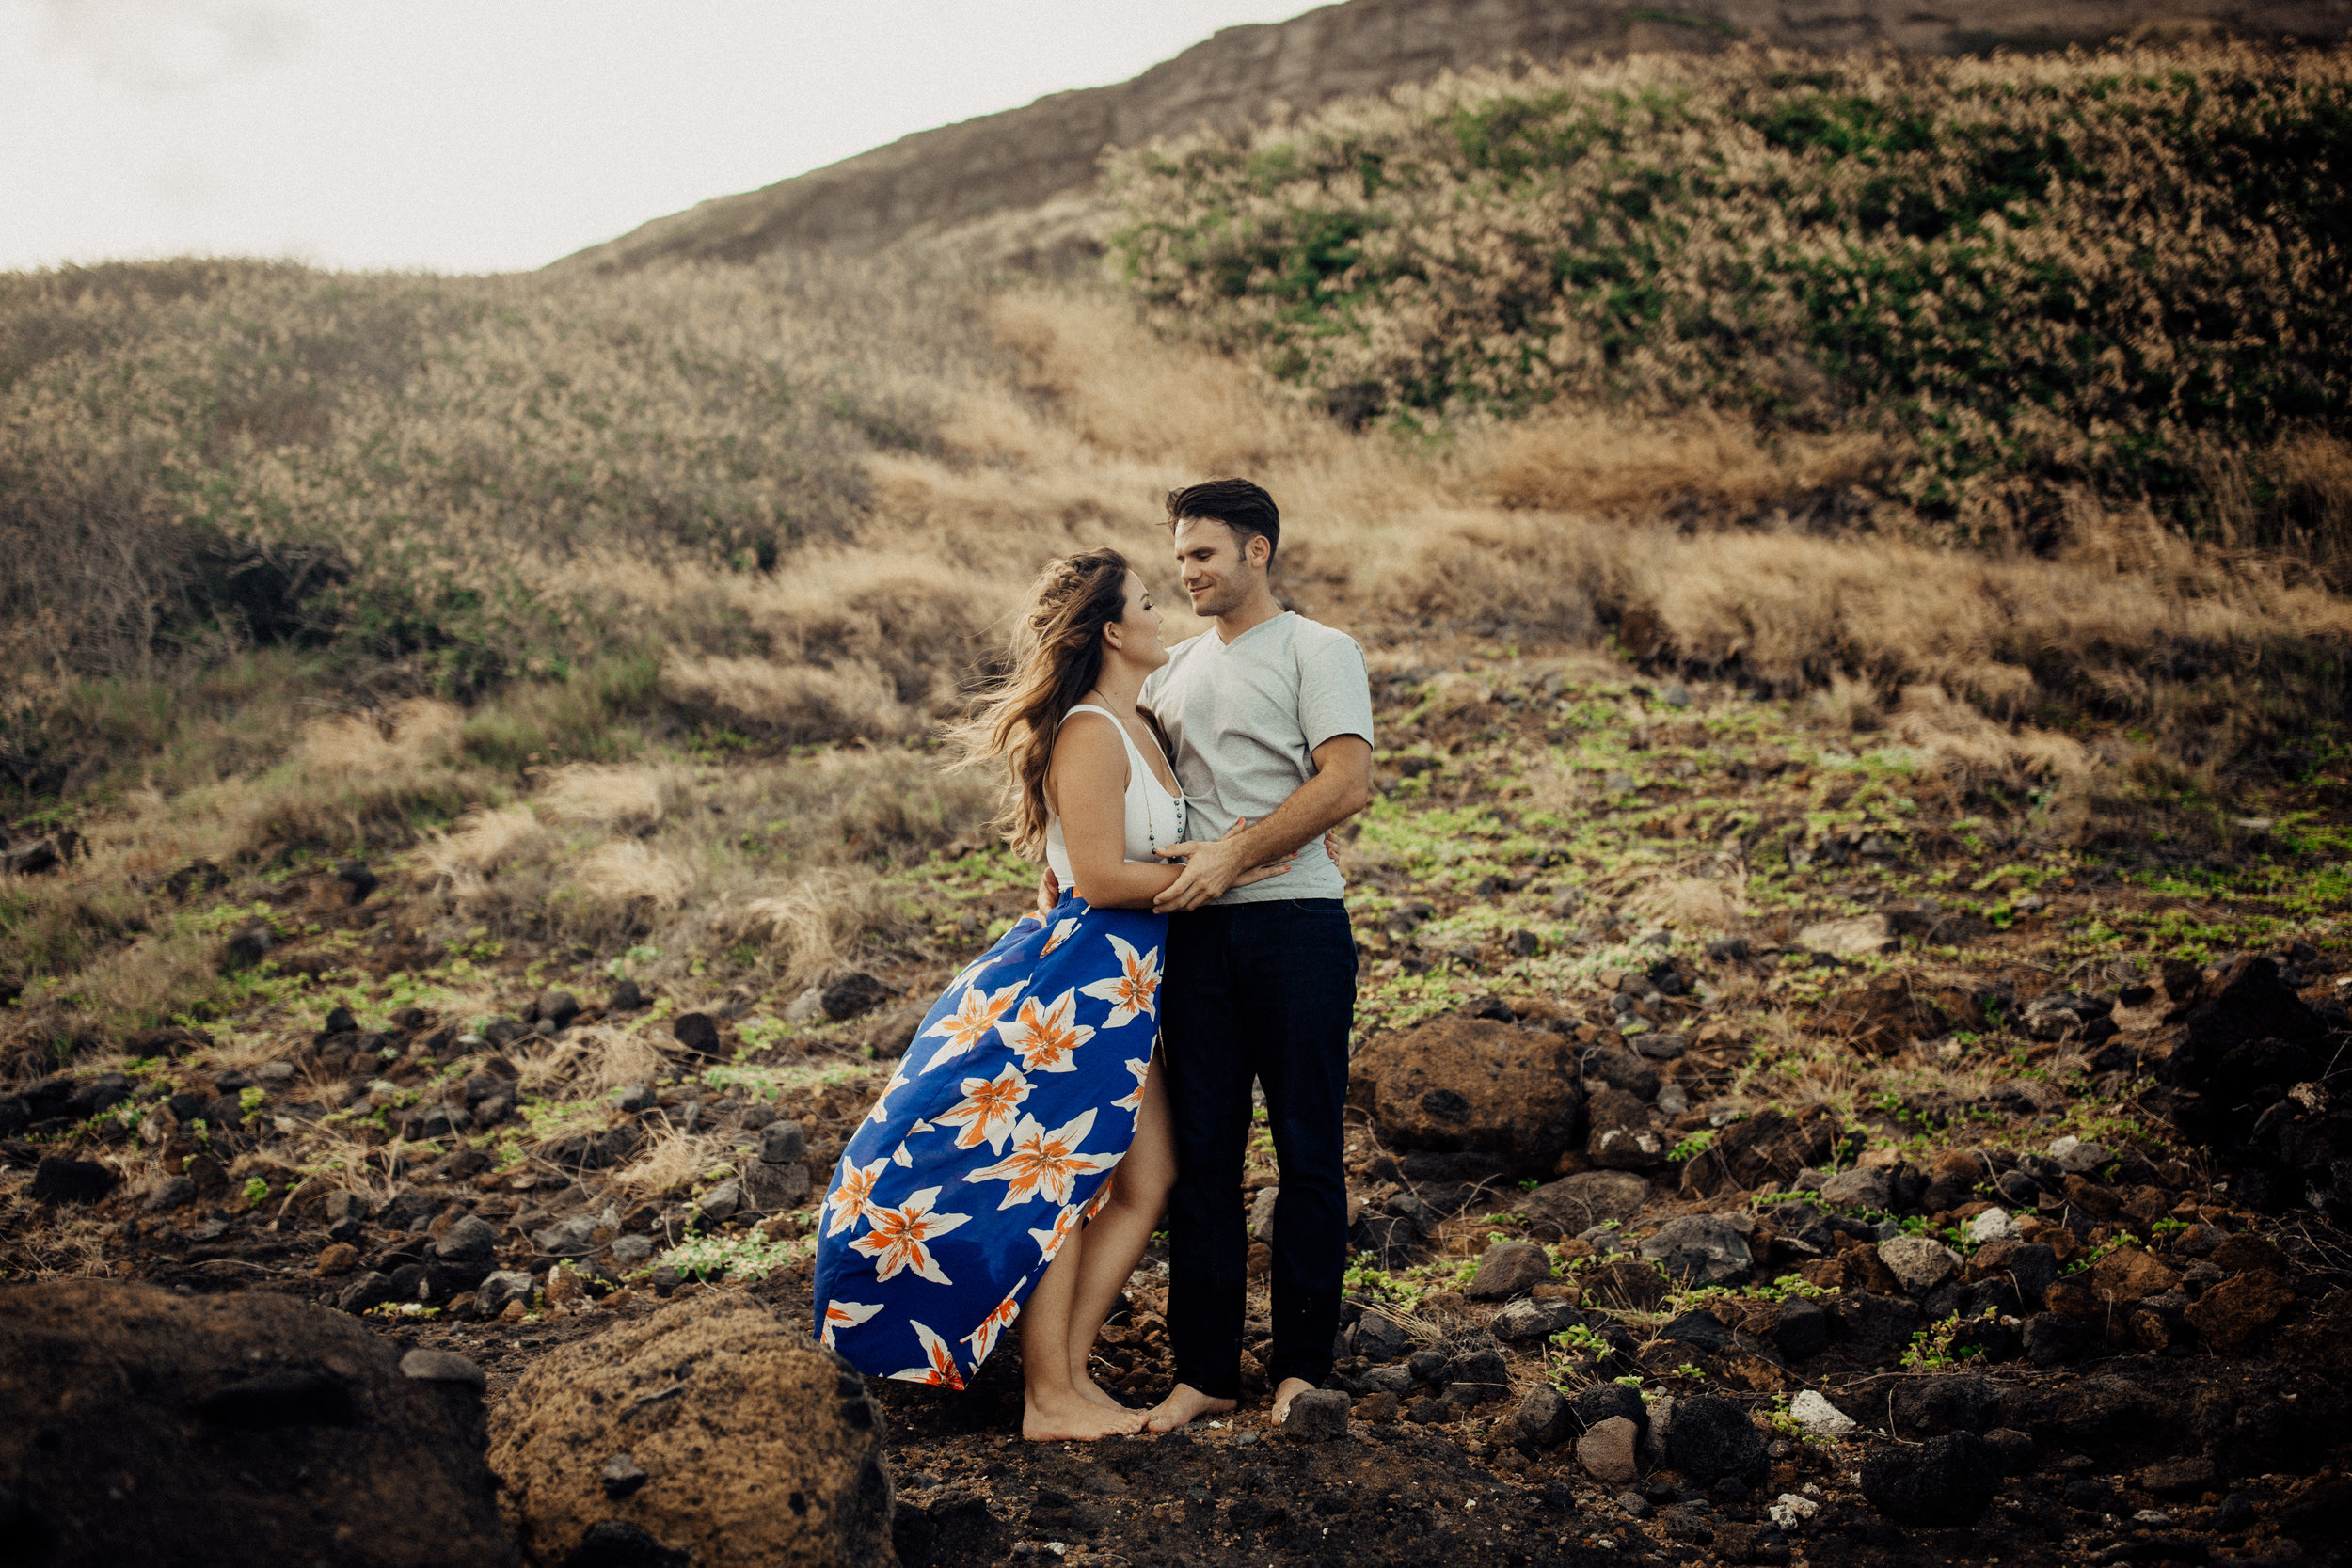 honolulu-wedding-photographer-172.jpg